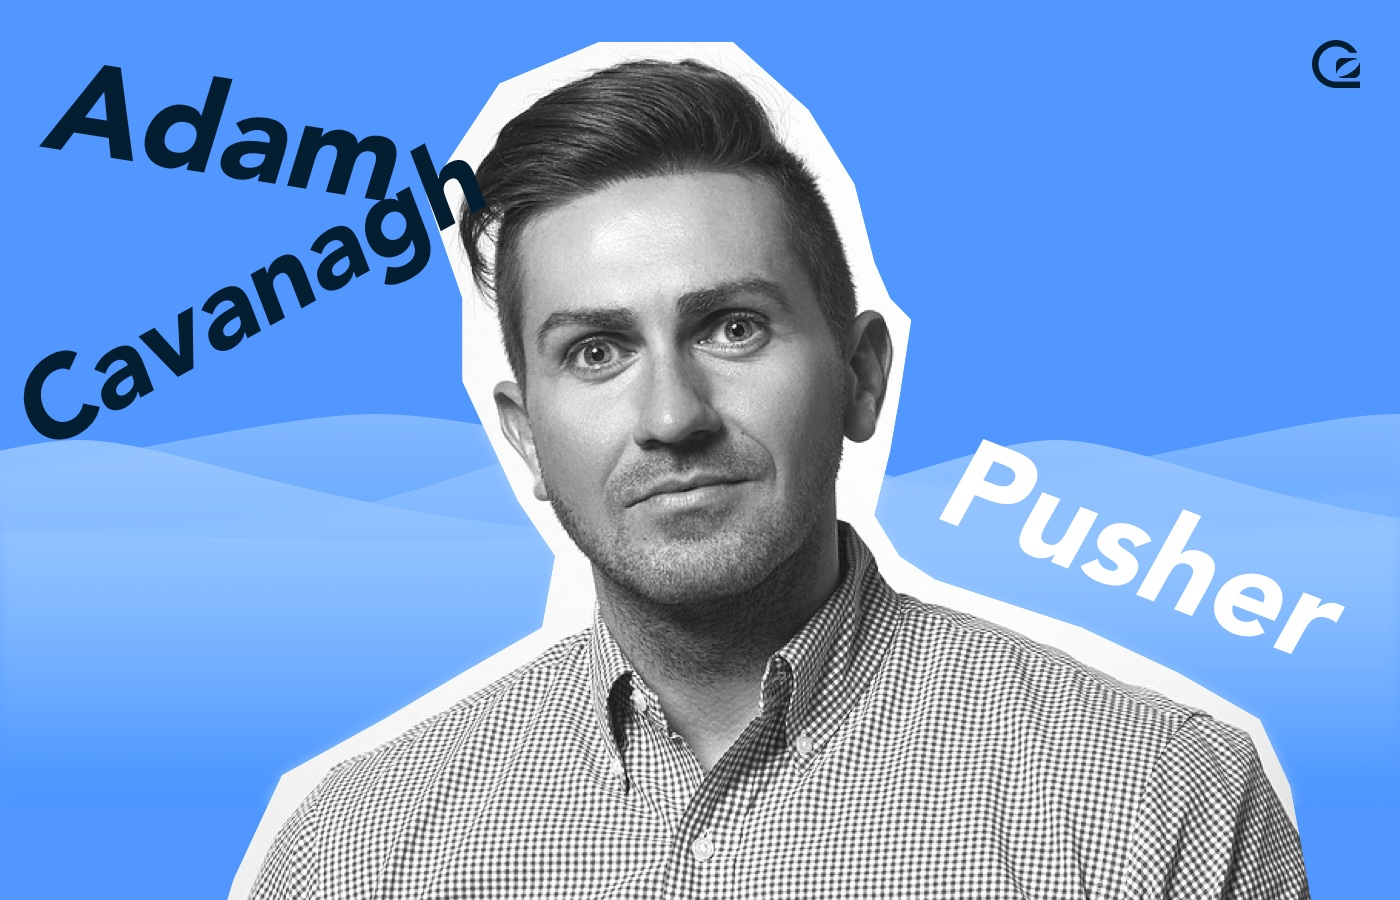 Adam Cavanagh of Pusher talking about selling to developers on the GoSquared Podcast